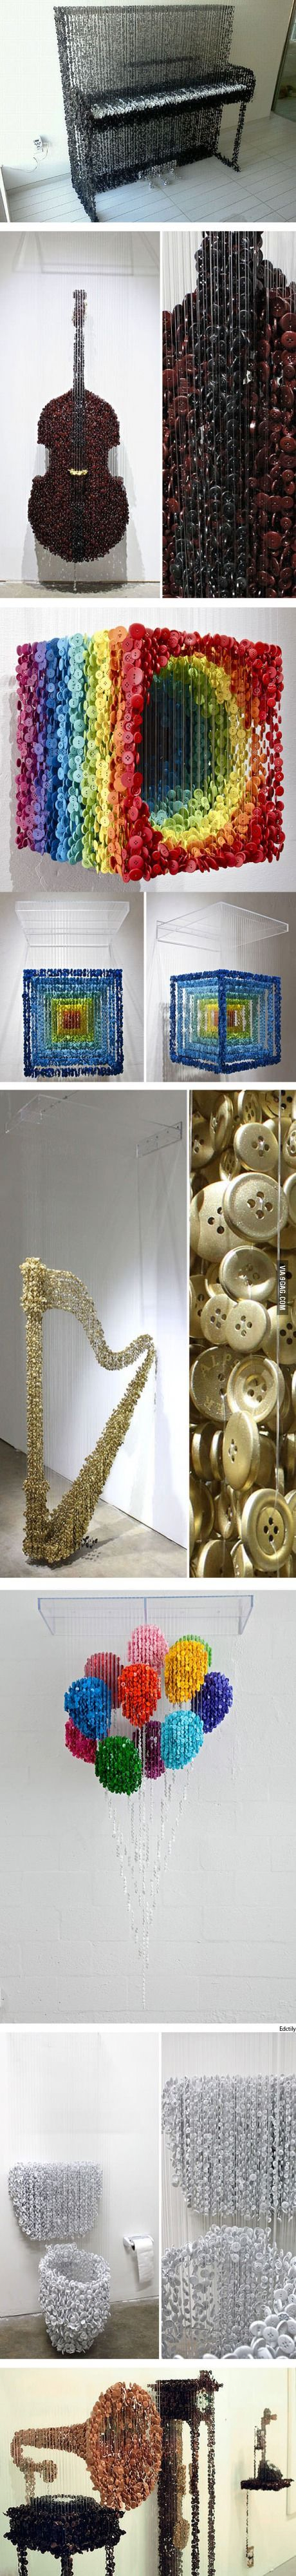 Sculptures made from buttons on strings